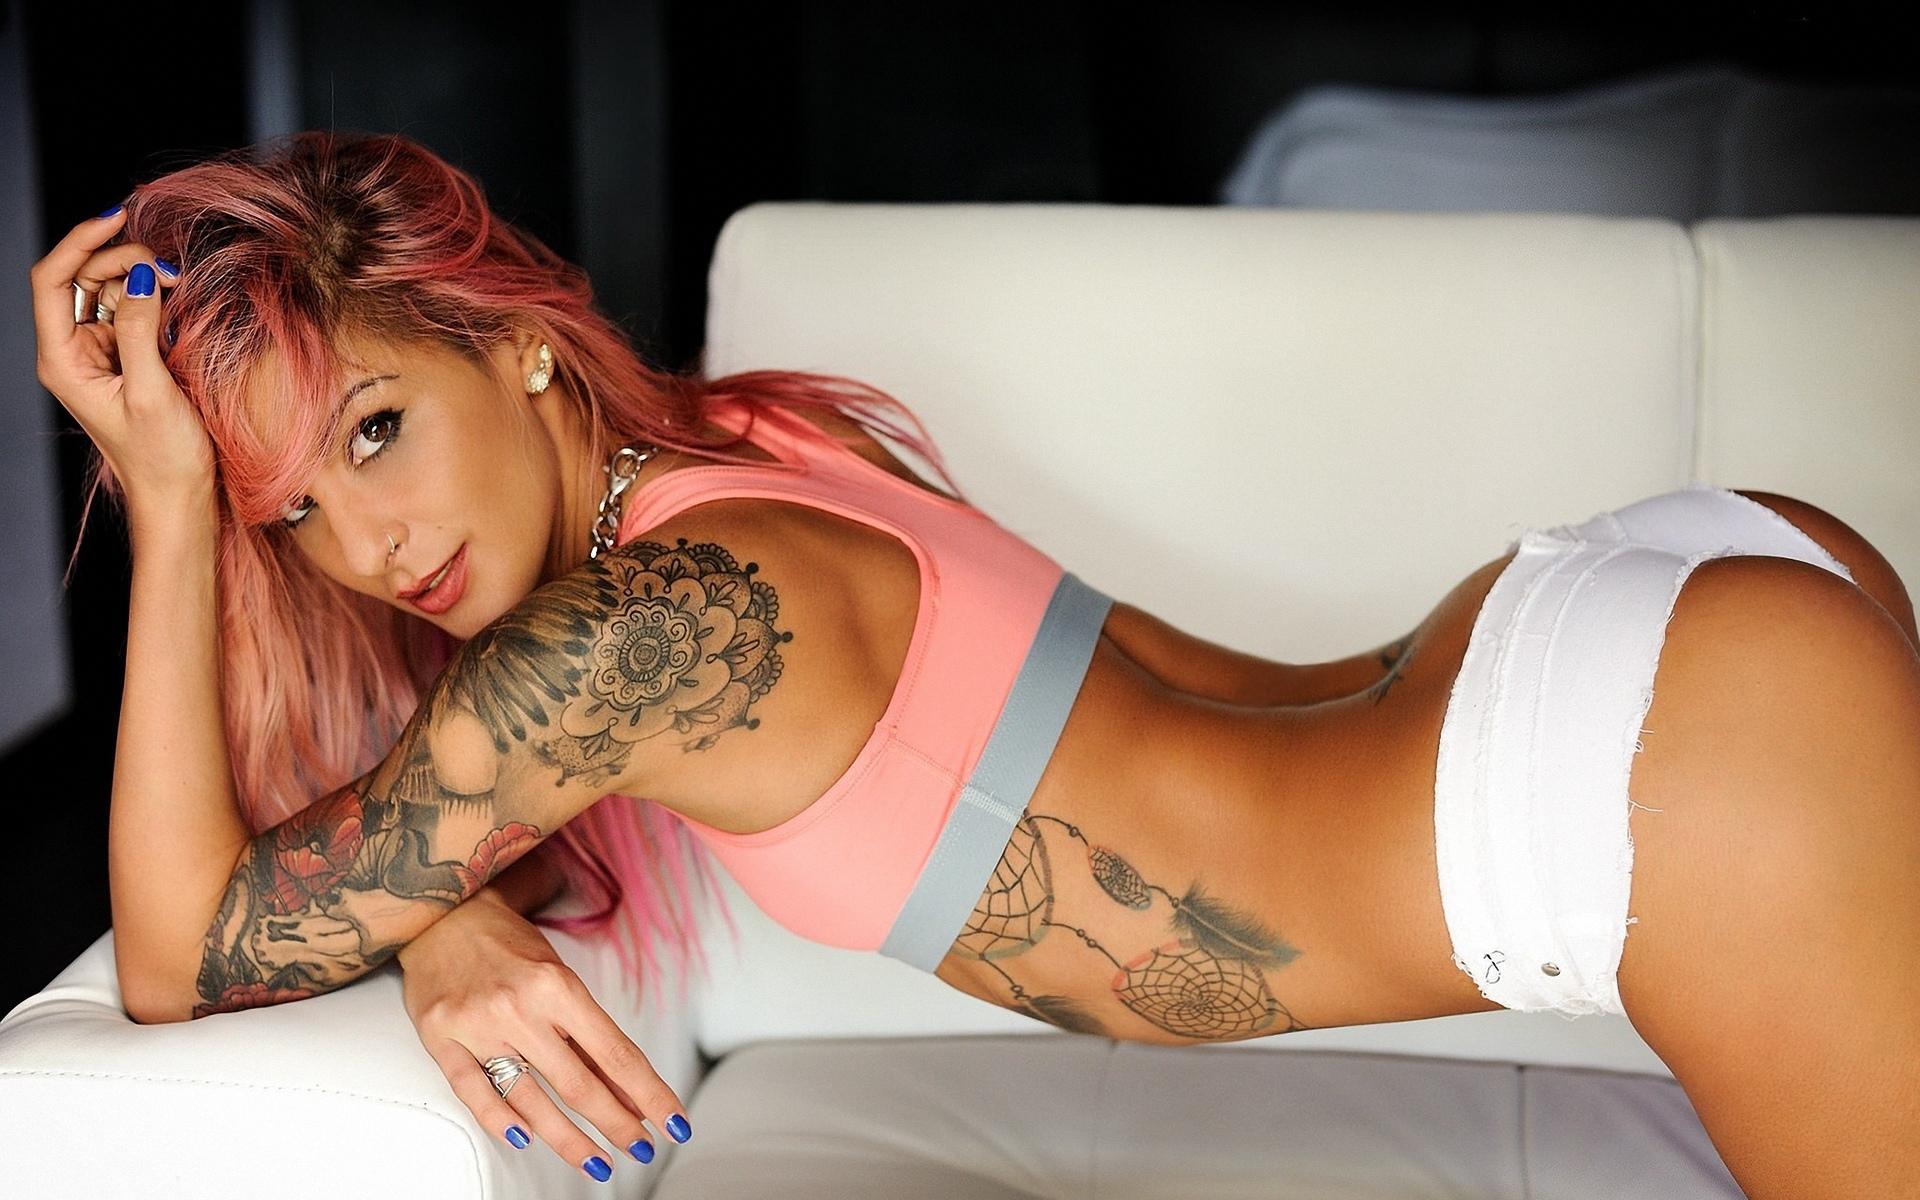 girls-with-tattoos-naked-gifs